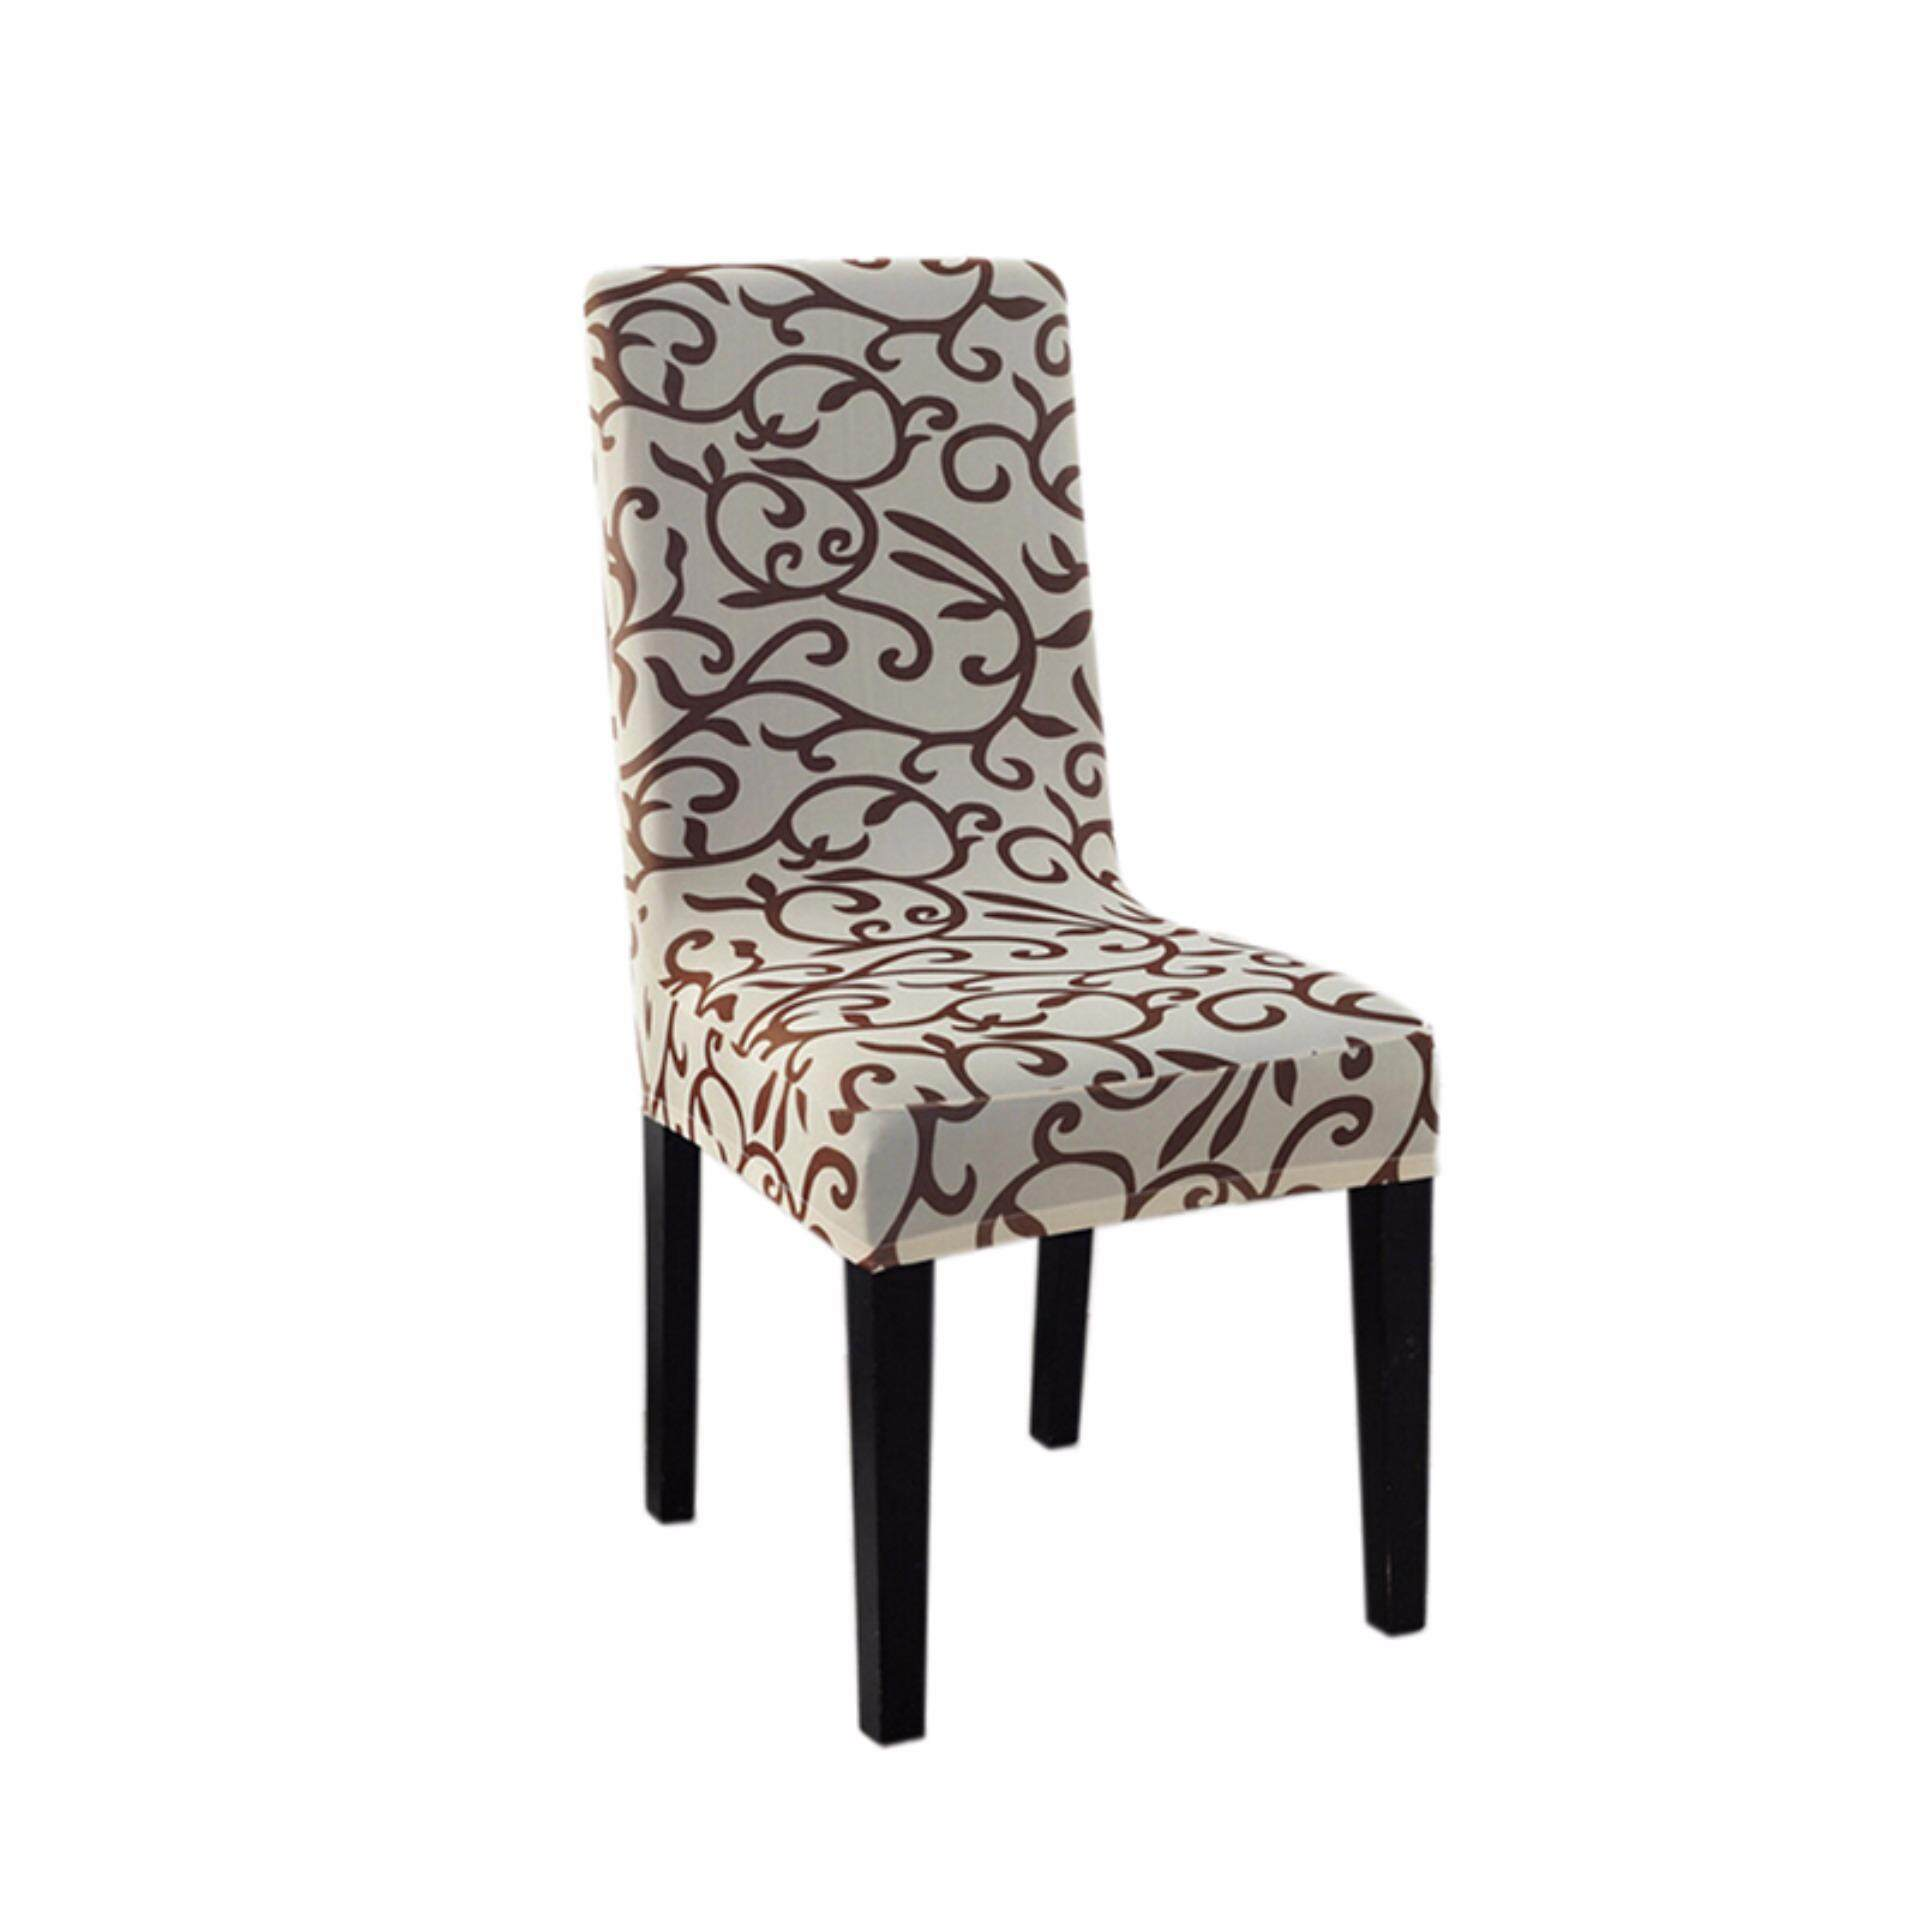 banquet chair covers malaysia louis ghost chairs home sofa slips buy at best veli shy elastic dining room wedding cover washable slipcover champagne coffee